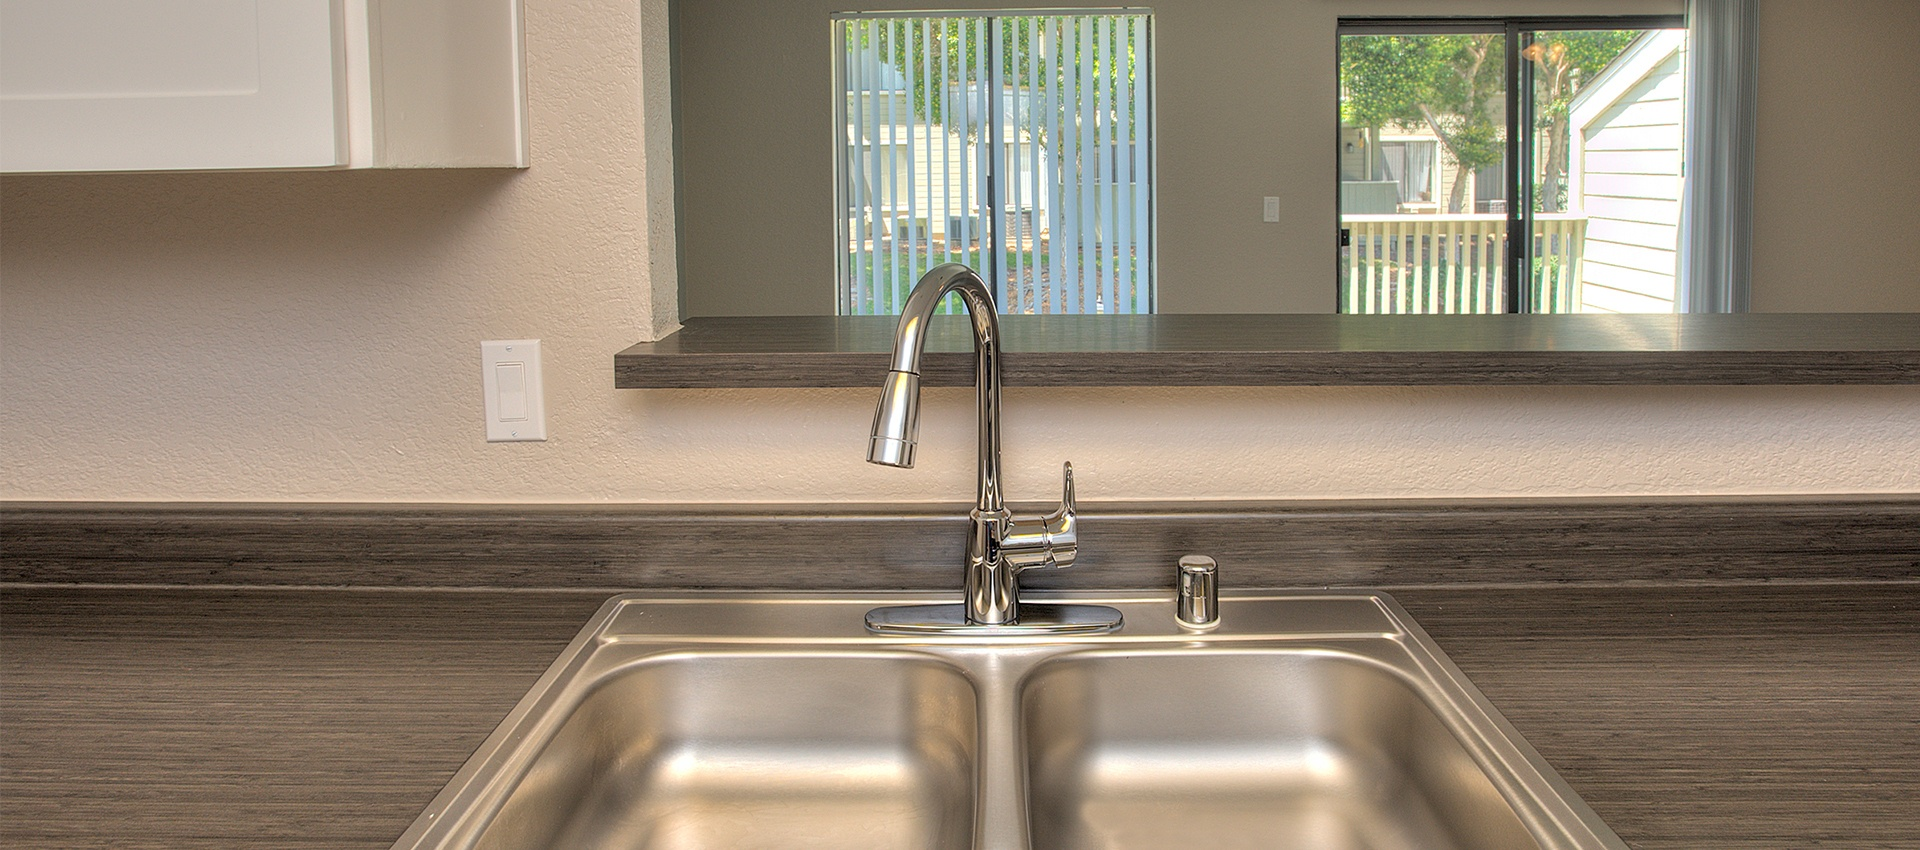 Stainless Steel Sink Fixture in Sandpiper Village Apartment Homes in Vacaville, CA